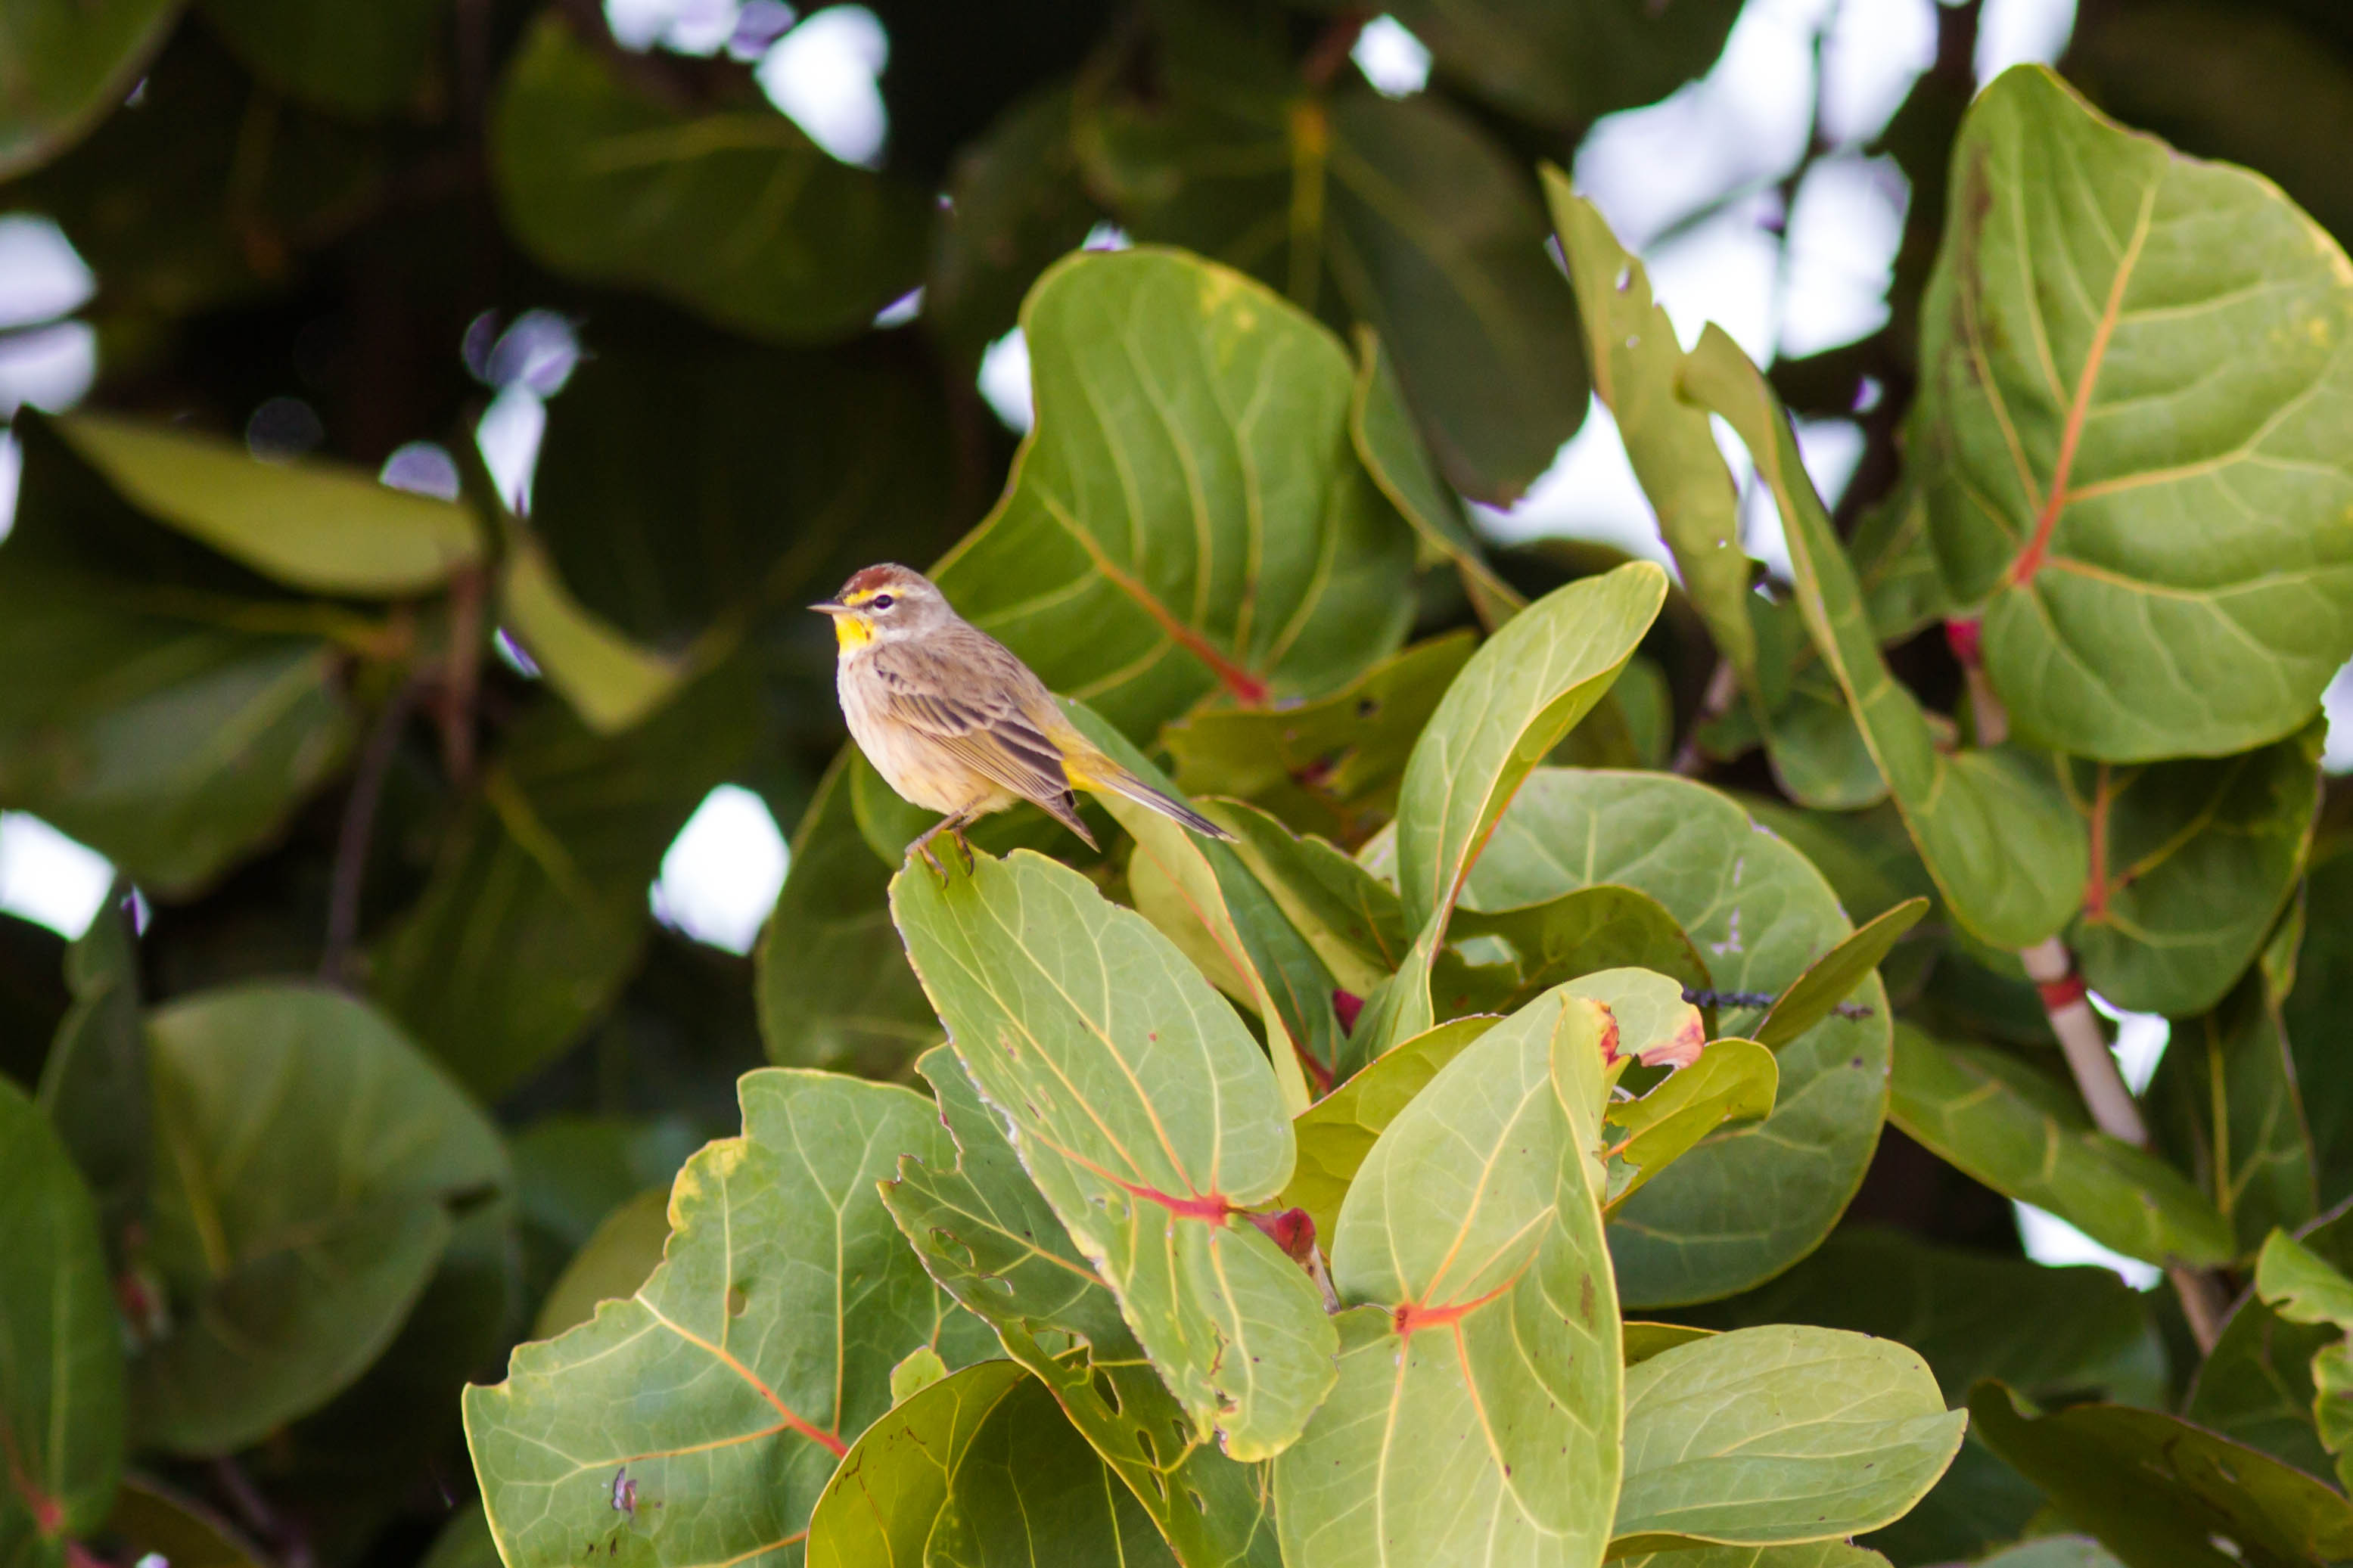 Photo of a palm warbler